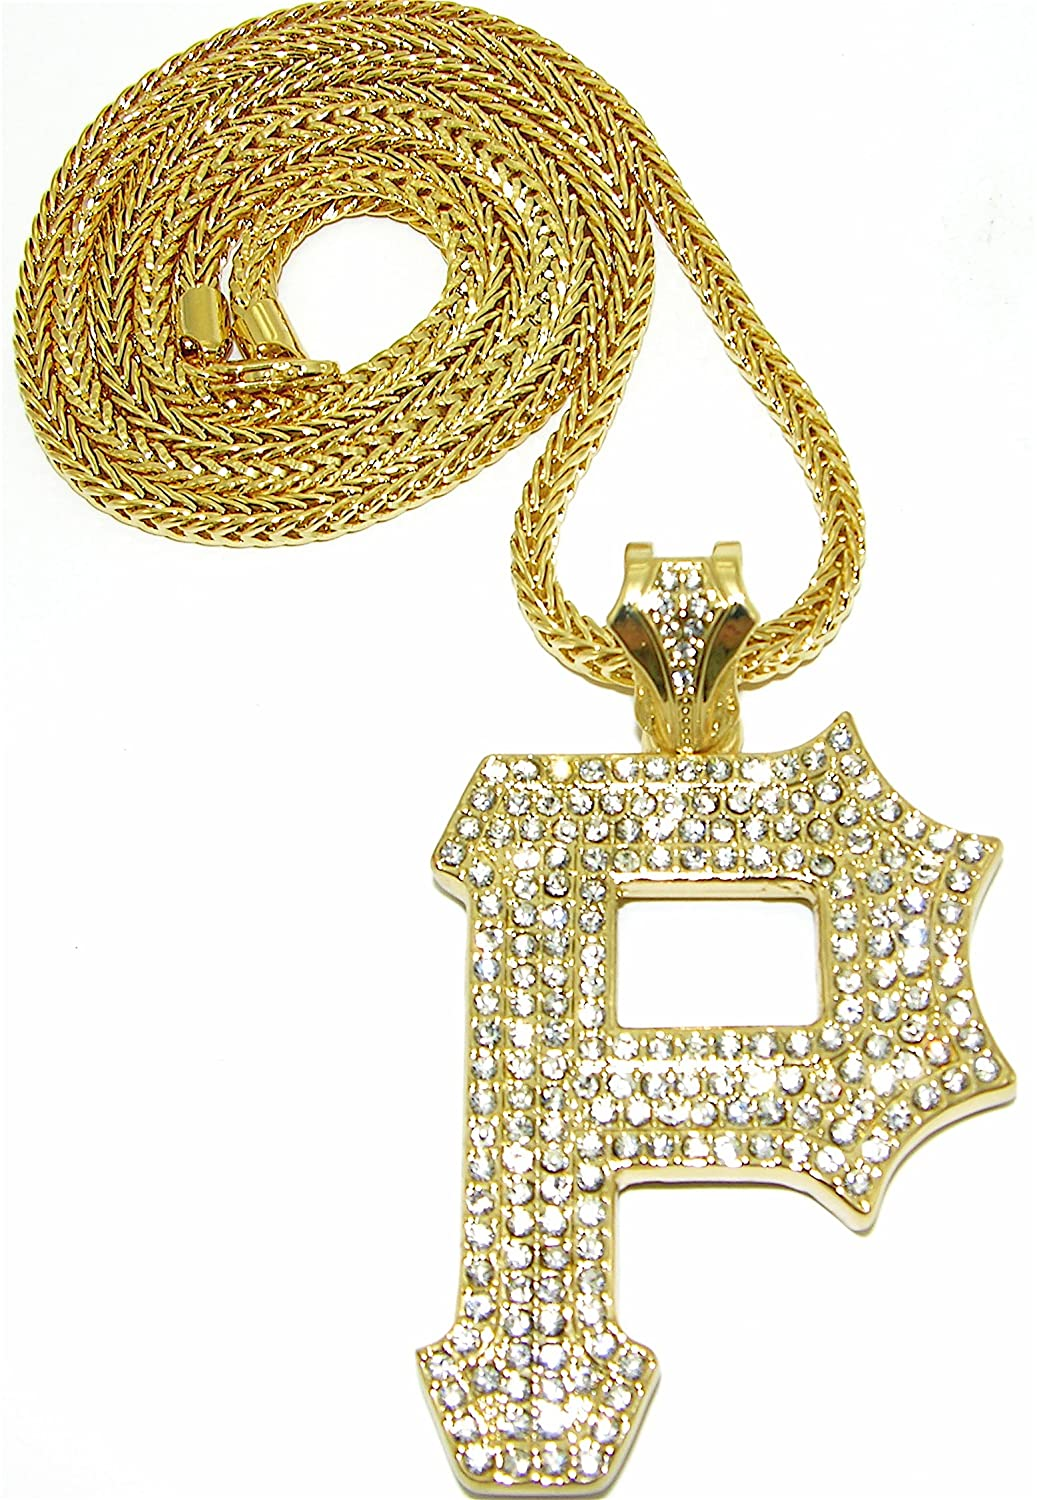 GWOOD P Iced Out Pendant Replica With Gold Color 36 Inch Long Franco Style Chain